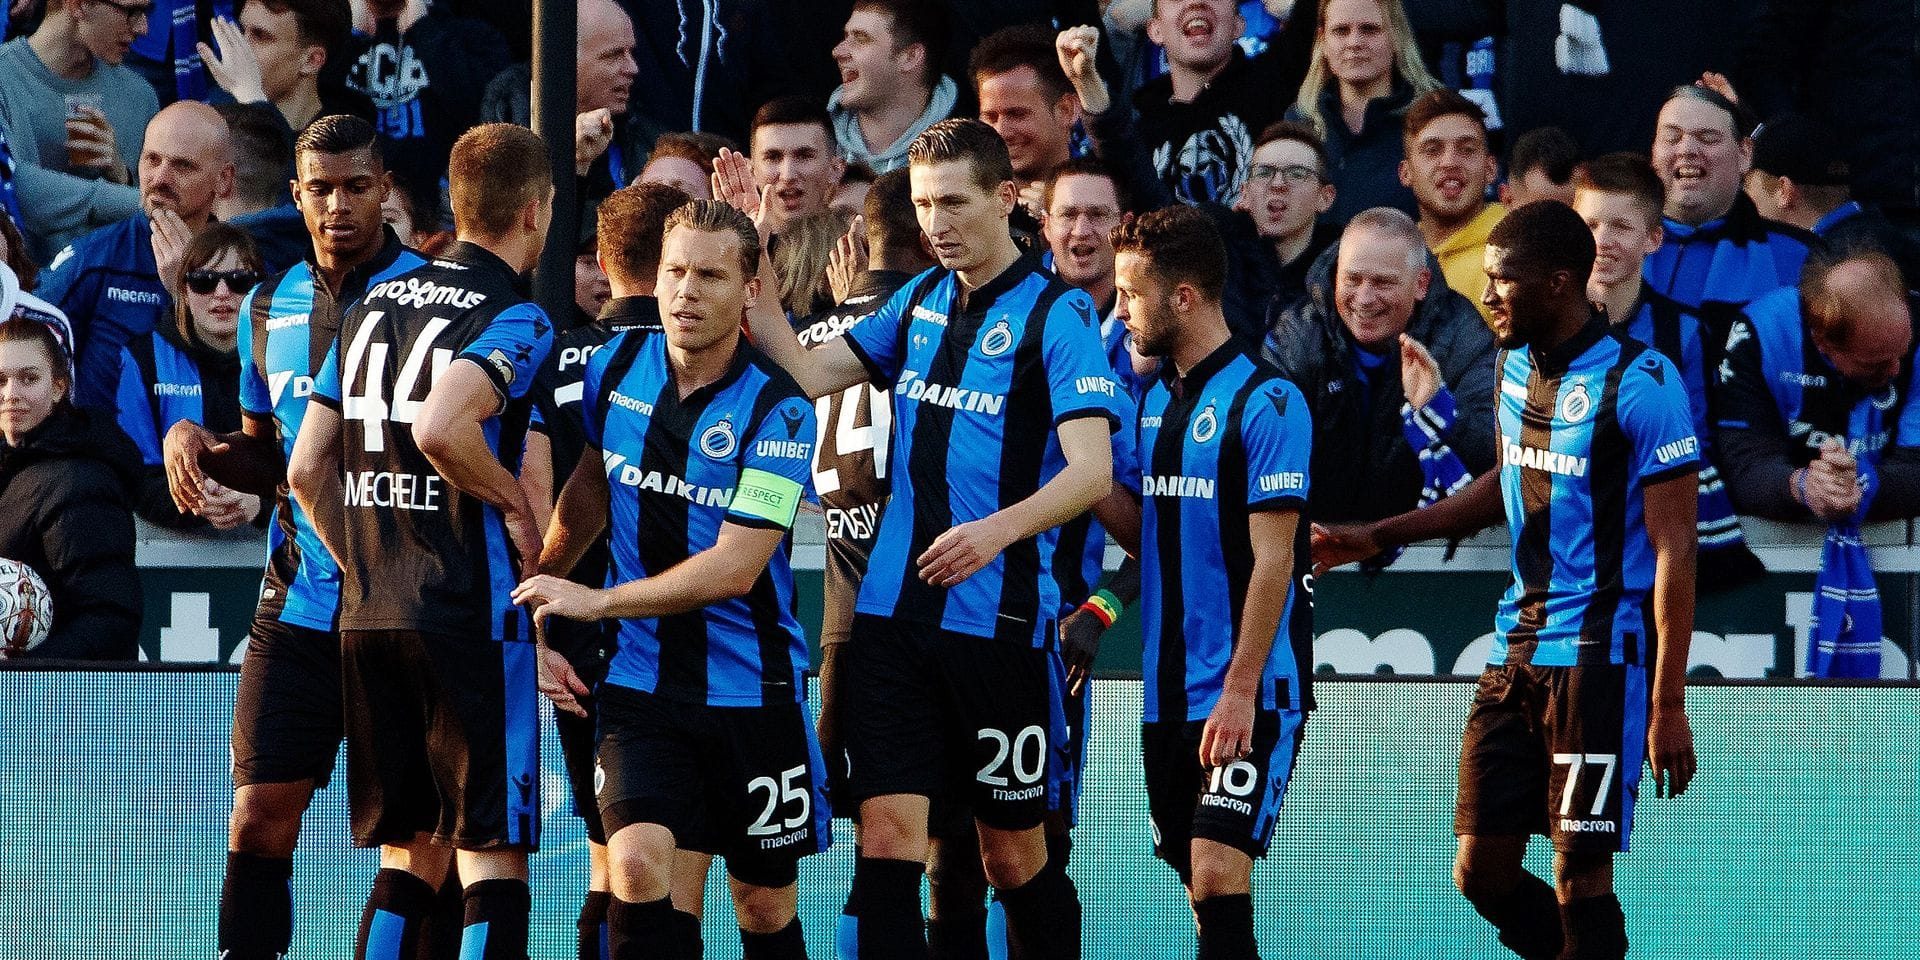 Club's Hans Vanaken celebrates after scoring during a soccer match between Club Brugge and KAA Gent, Sunday 31 March 2019 in Brugge, on day 1 (out of 10) of the Play-off 1 of the 'Jupiler Pro League' Belgian soccer championship. BELGA PHOTO KURT DESPLENTER